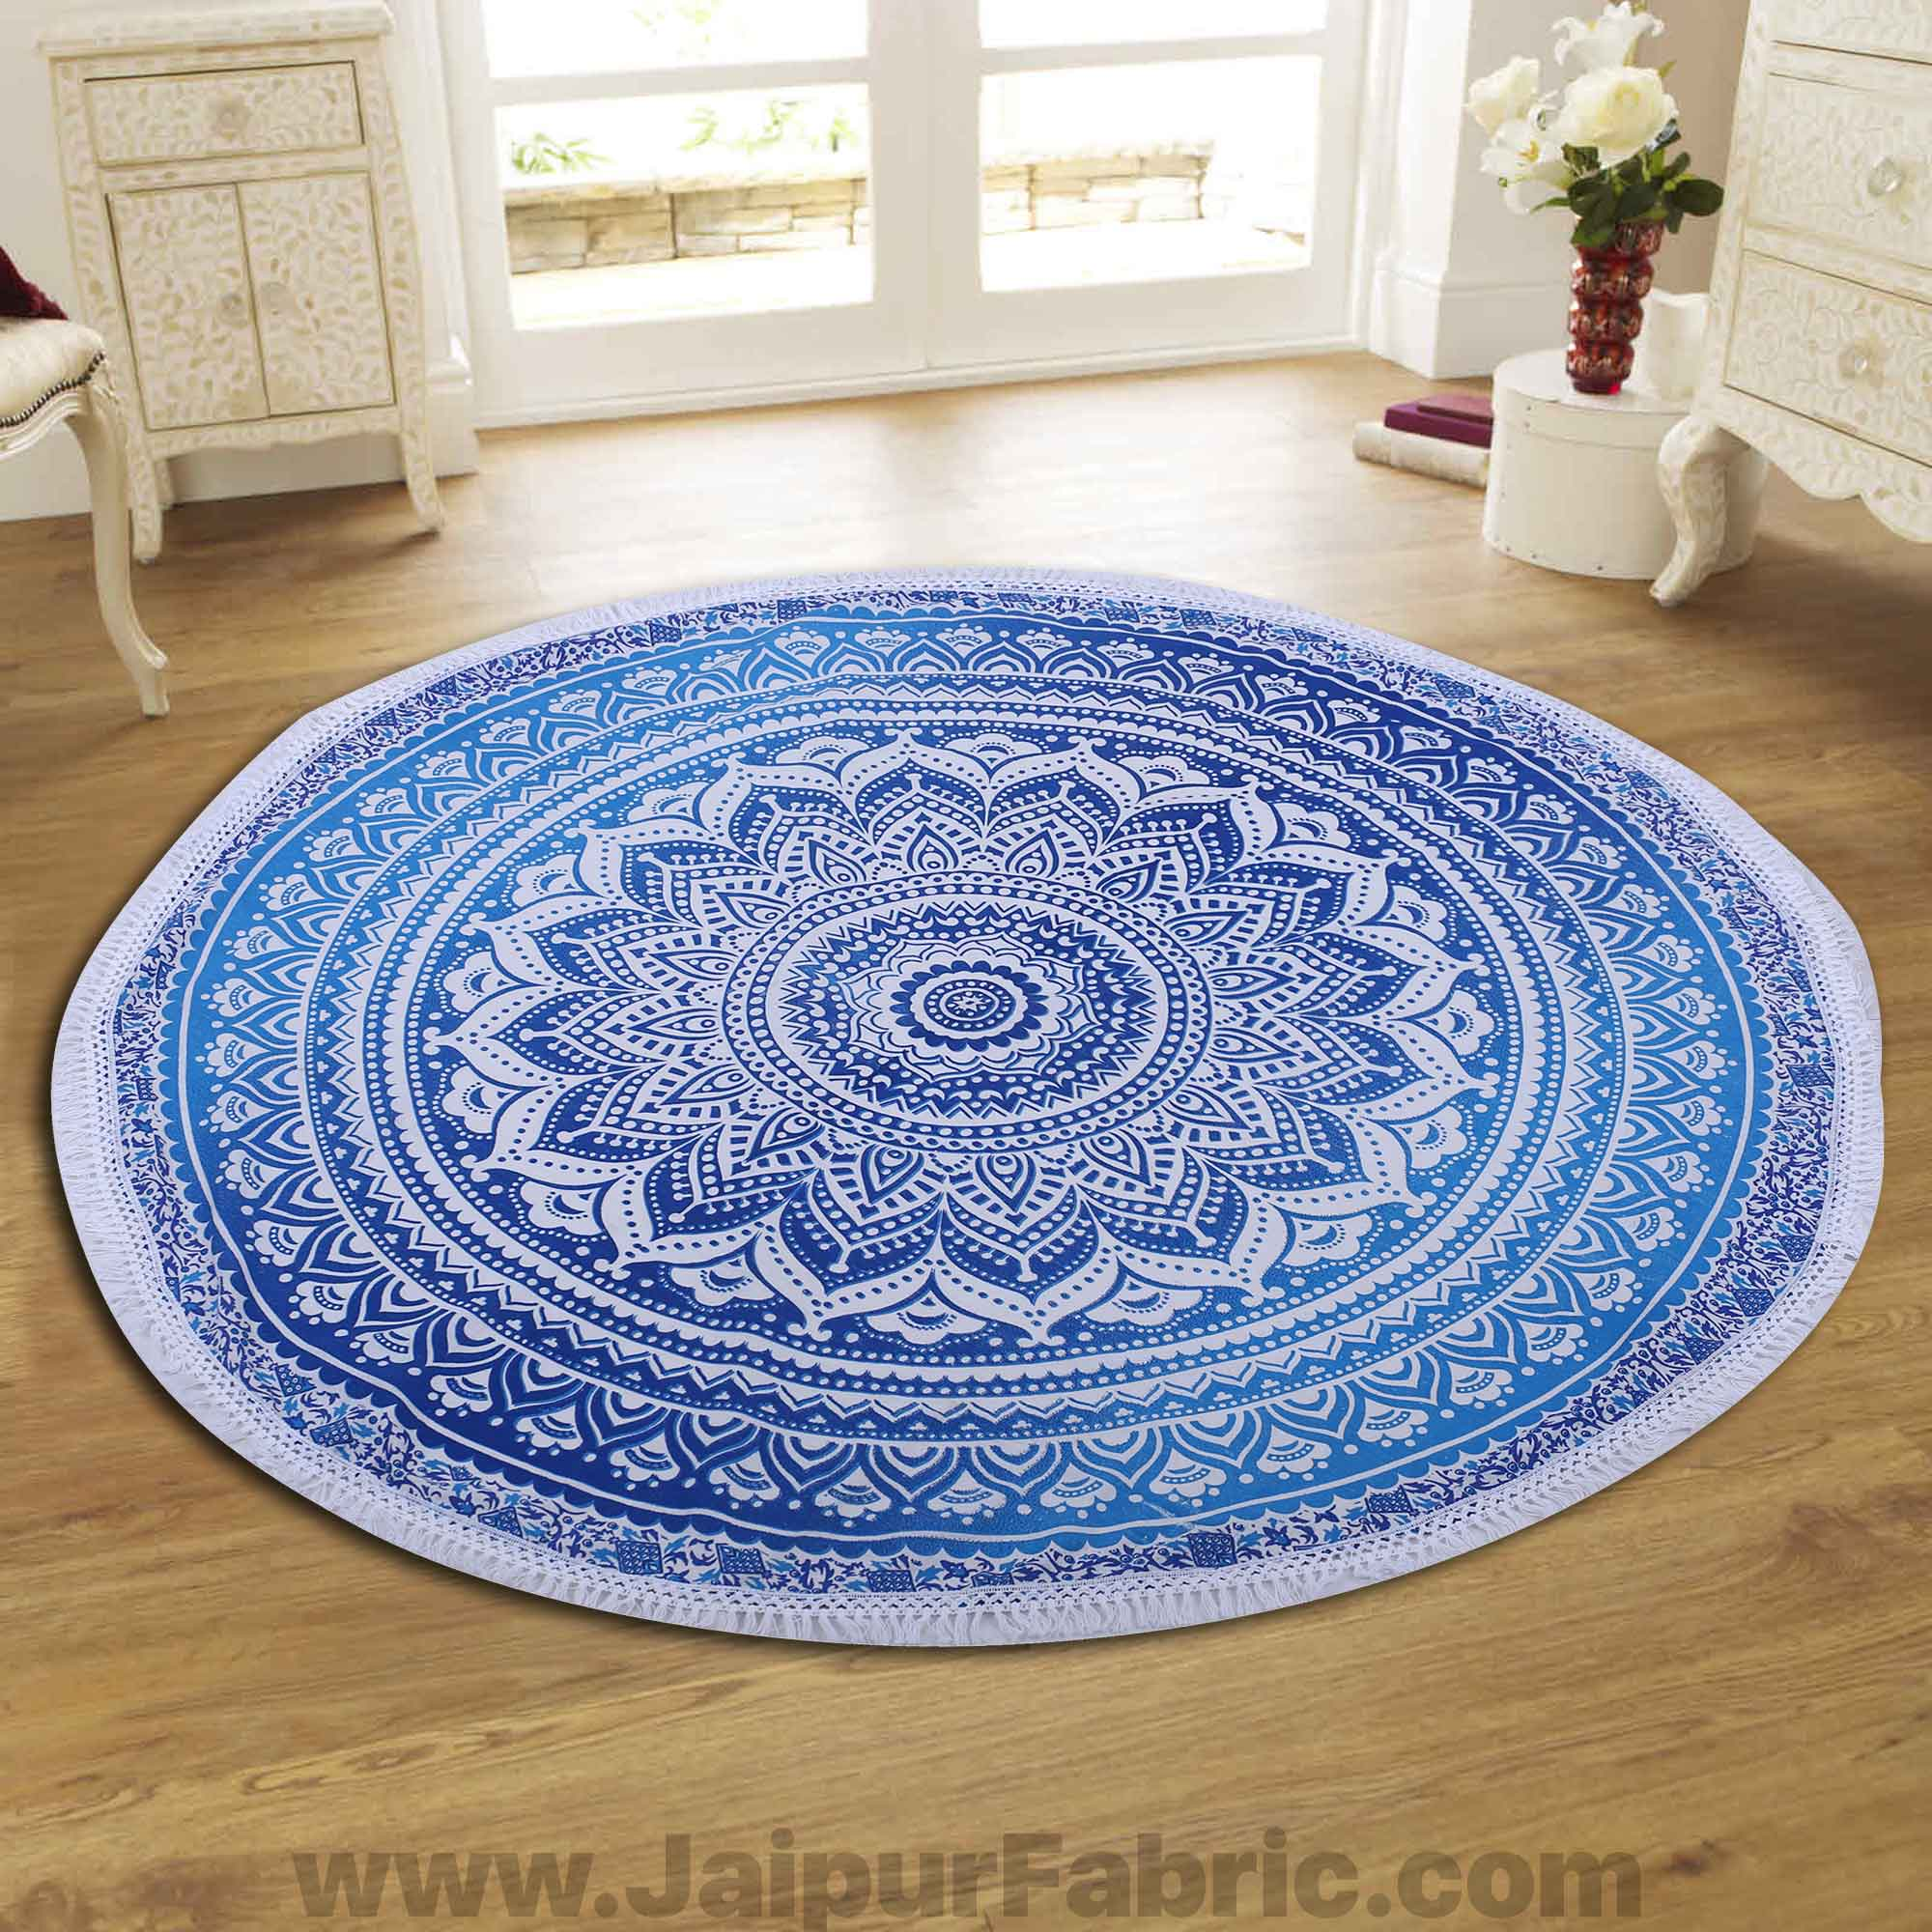 "Pink Ombre Mandala Printed Wall Hanging Round Roundies Beach Throw Cotton Yoga Mat Table Cloths Table Cover Picnic Mat Tapestry Picnic Blanket Mat 72"" by Handicraft-Palace"